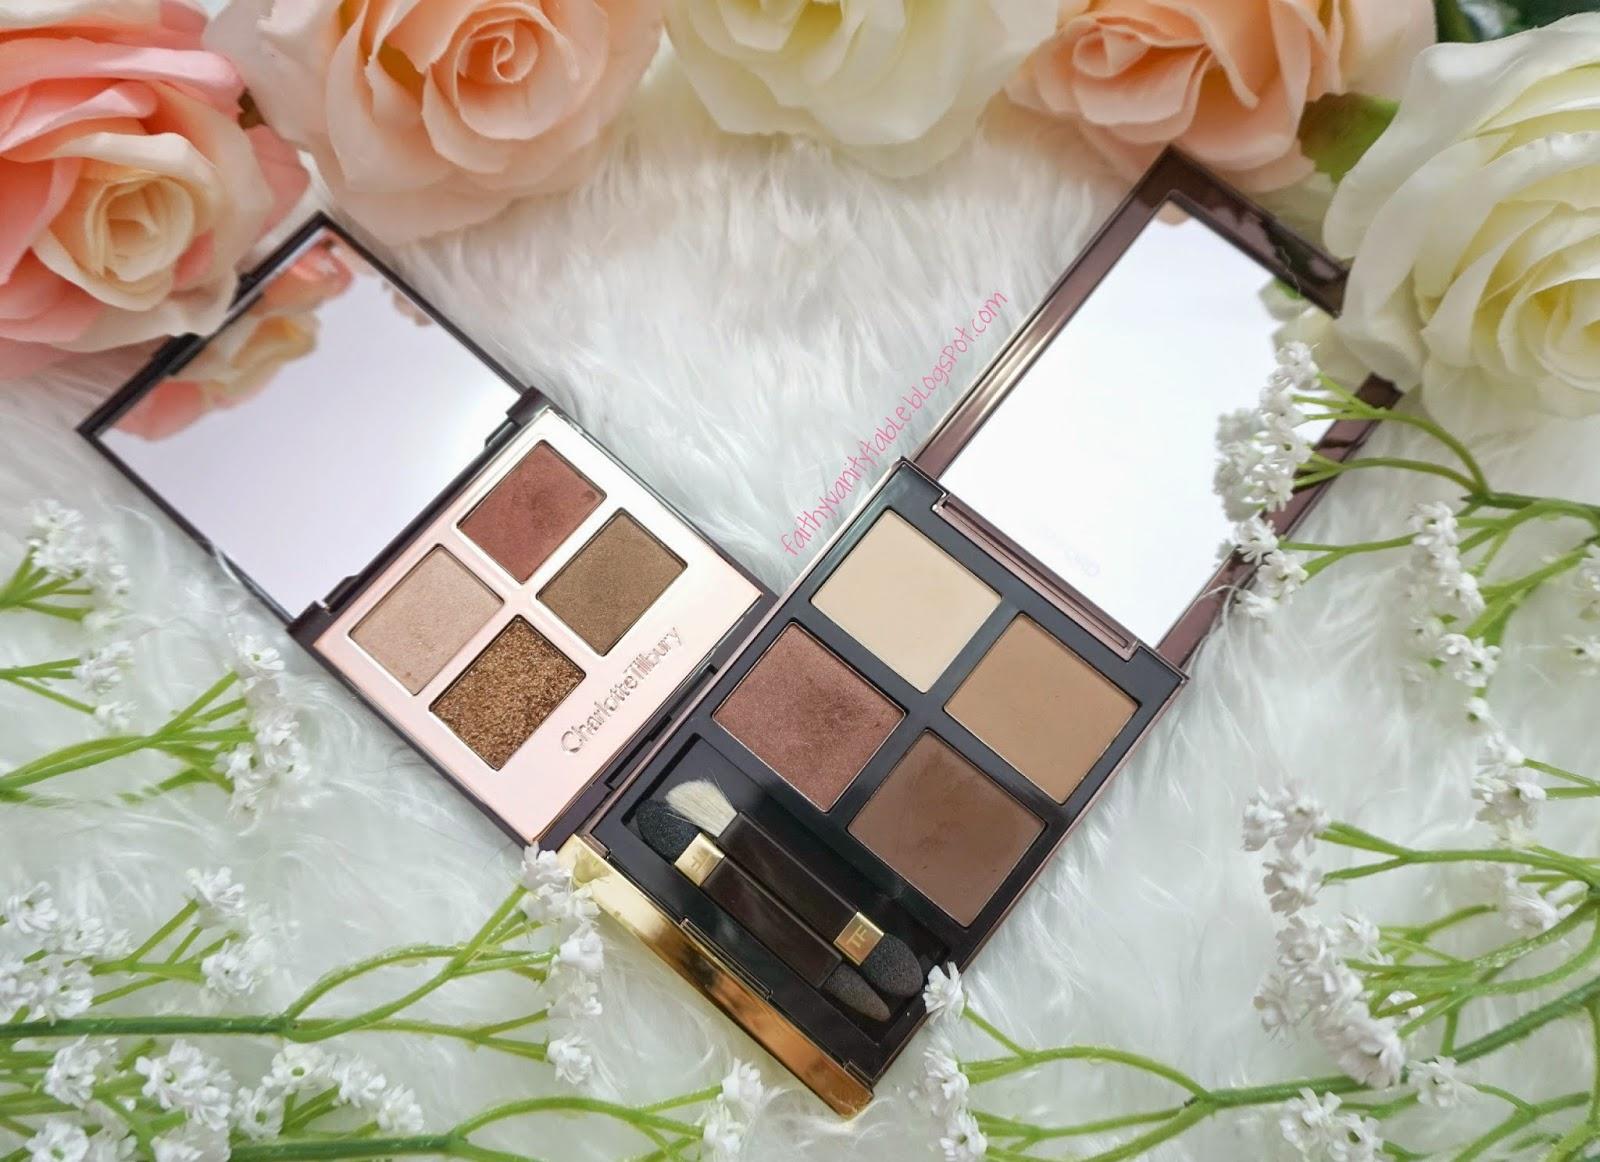 Review of Tom Ford, Charlotte Tilbury Eyeshadow Quad